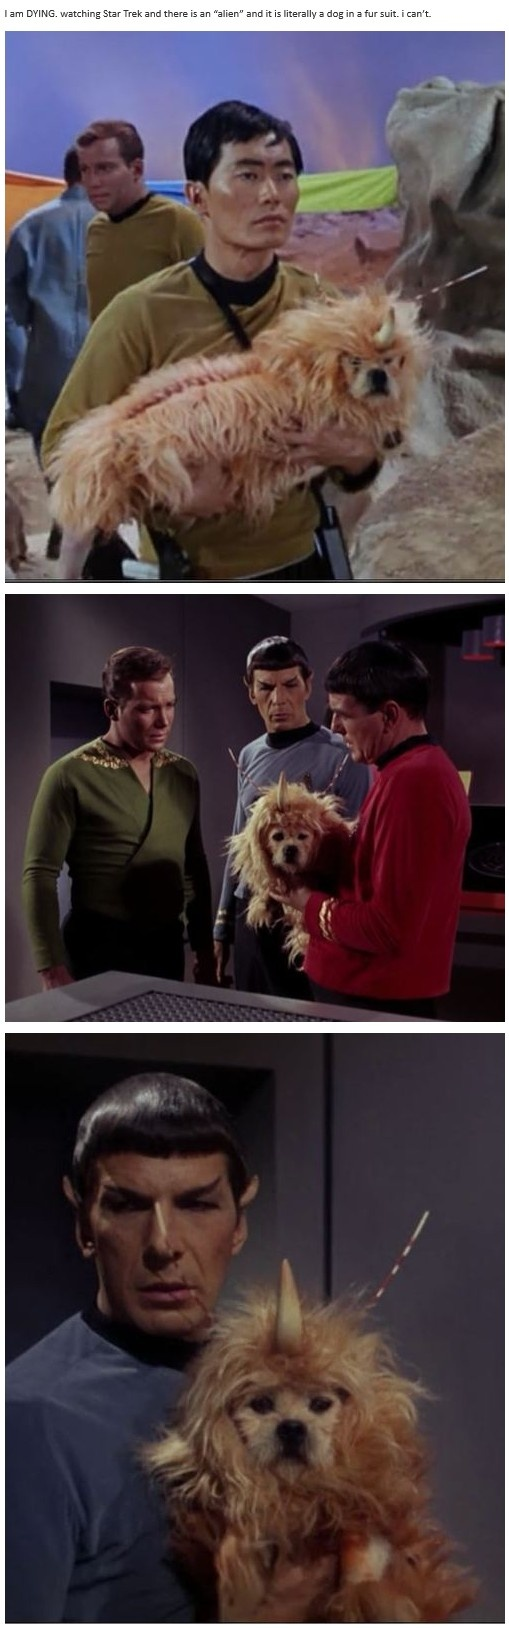 """""""I am DYING. watching Star Trek and there is an """"alien"""" and it is literally a dog in a fur suit."""" - Natalie (thispoorunfortunatesoul.tumblr.com)"""